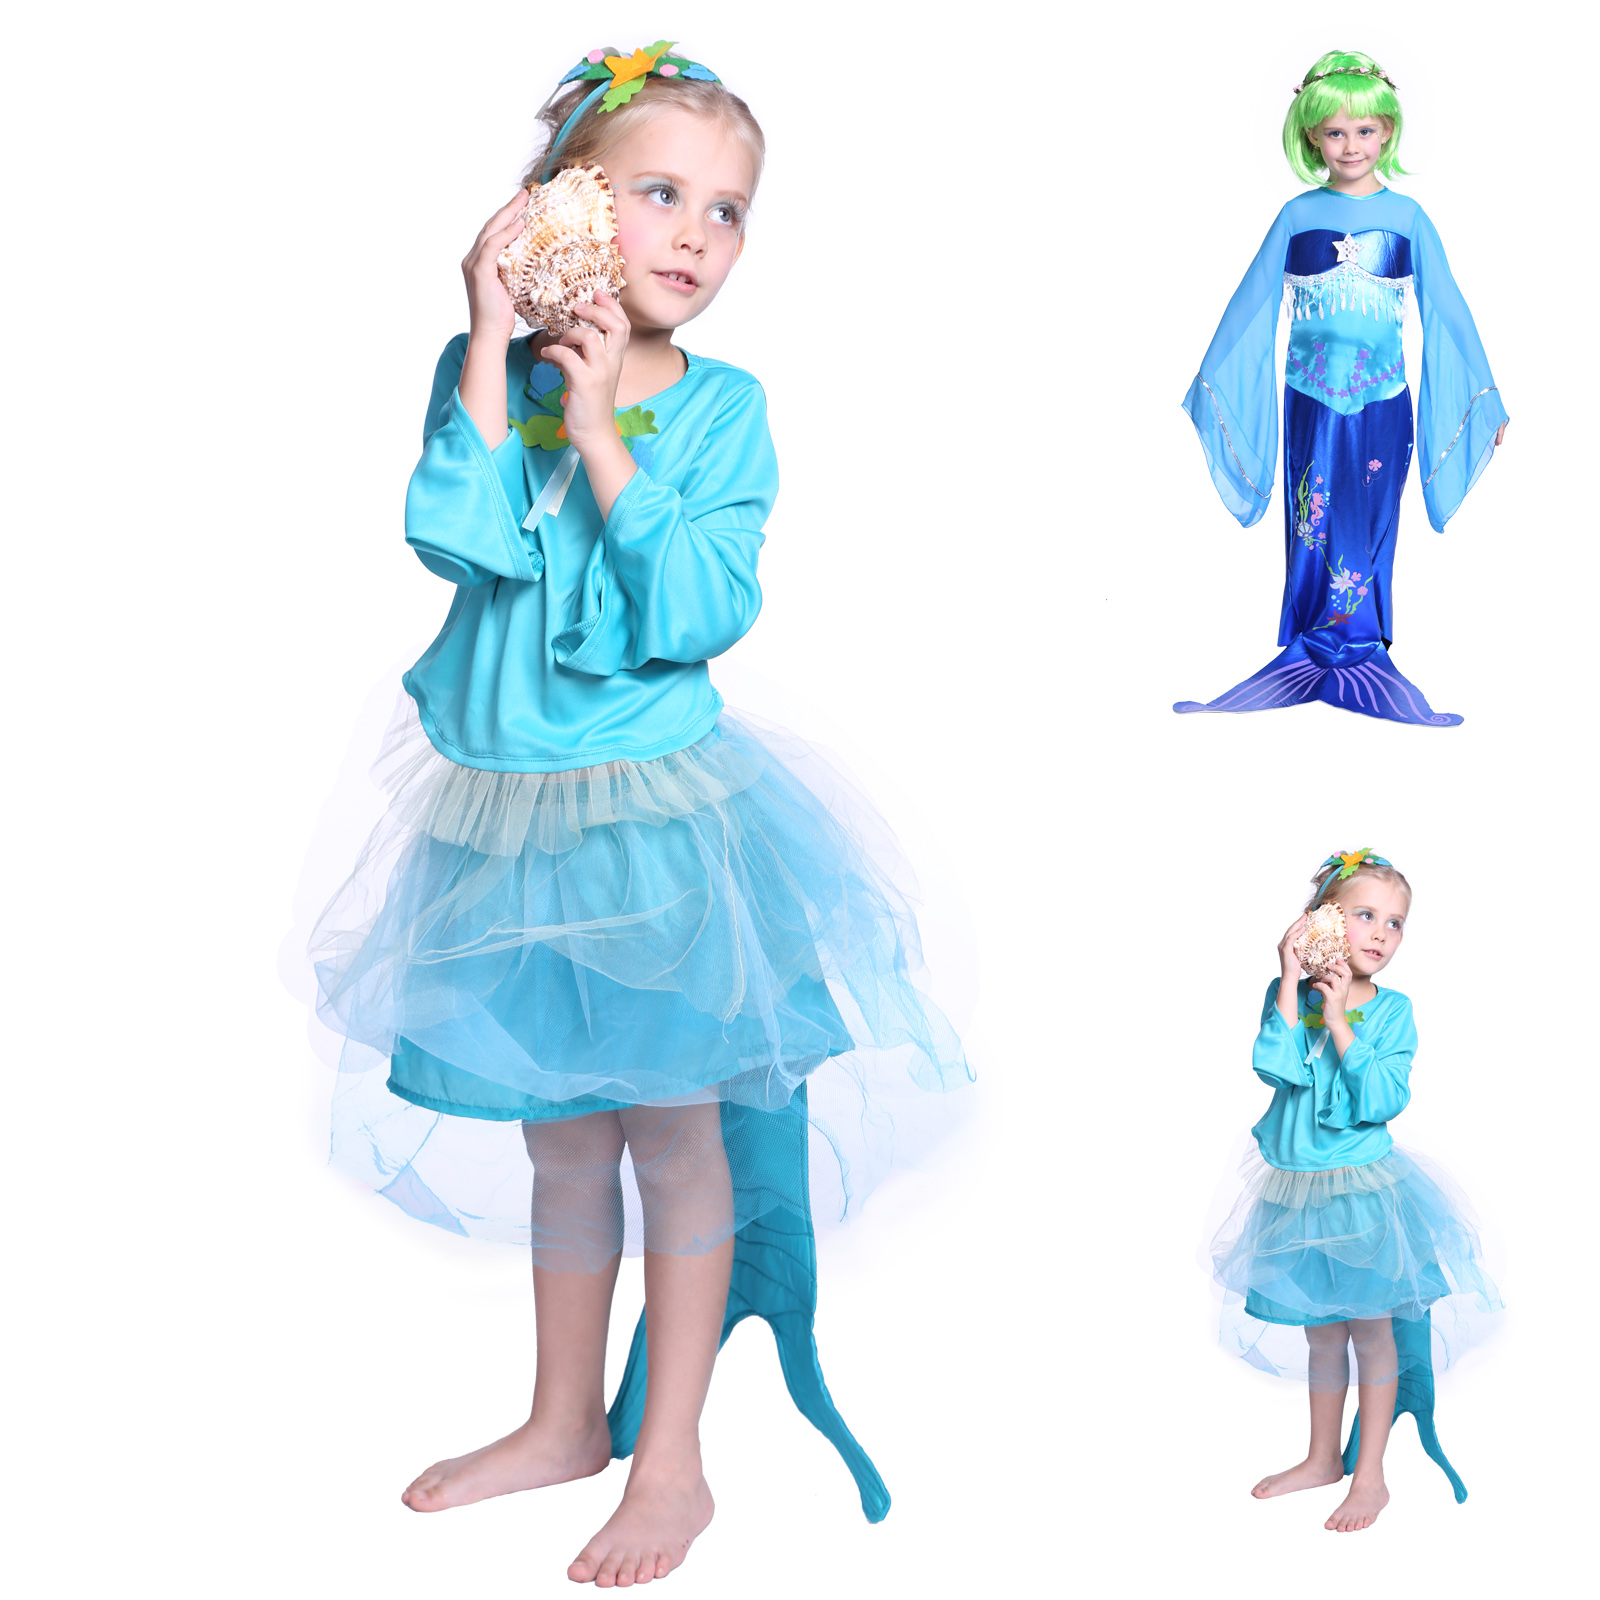 costume robe tutu petite sir ne fille enfant deguisement danse disney 4 7 ans ebay. Black Bedroom Furniture Sets. Home Design Ideas